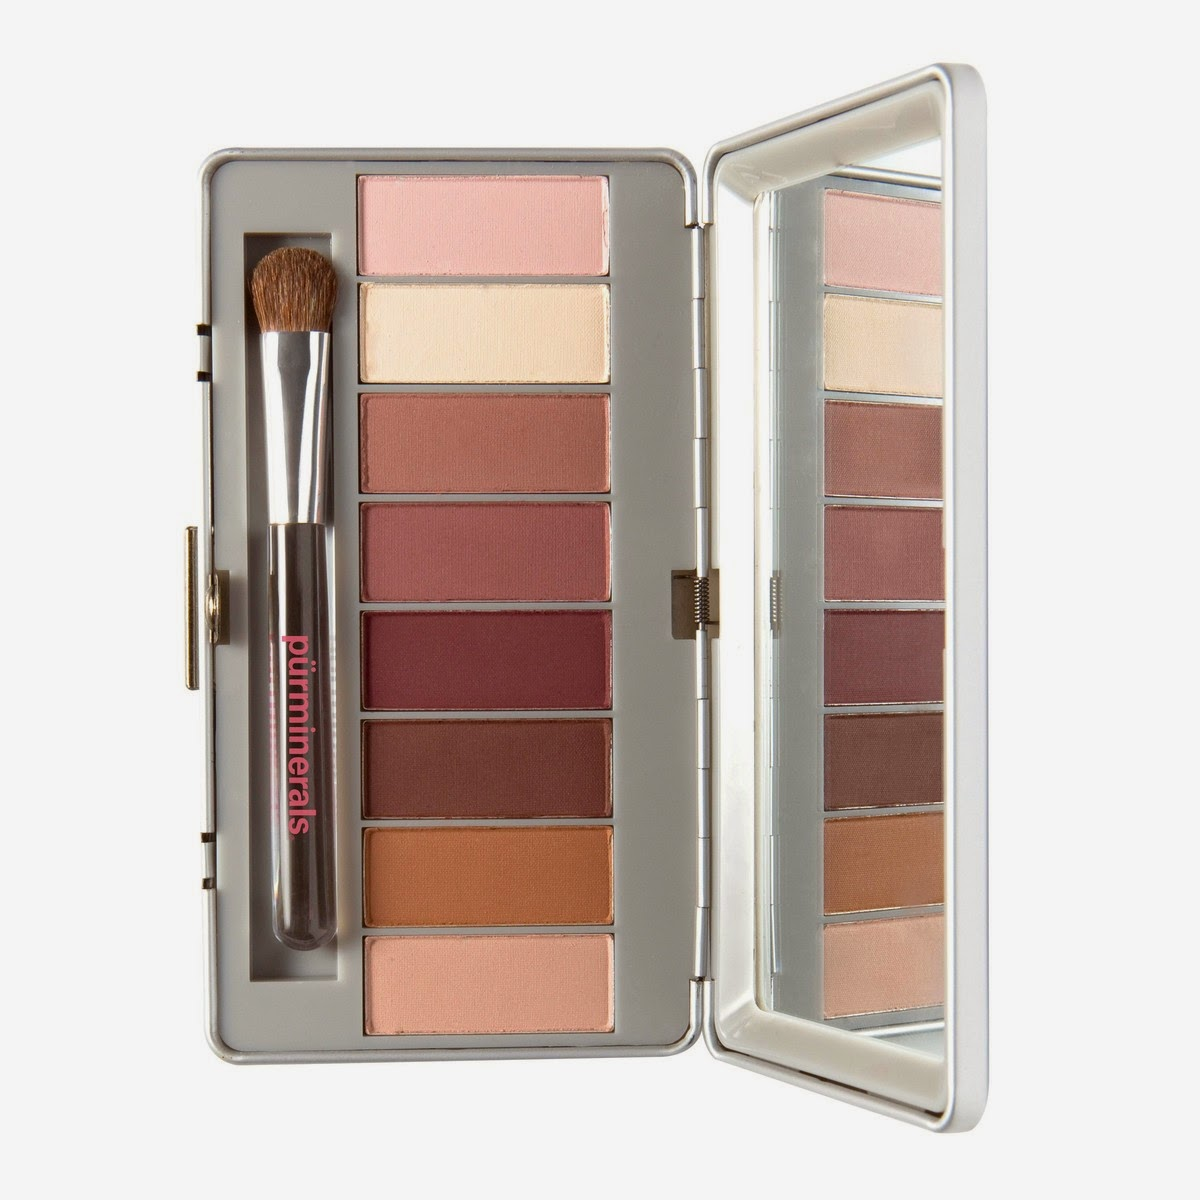 Pur Minerals Soul Mattes Eye Shadow Palette of Rosy Neutrals, opened, jpeg